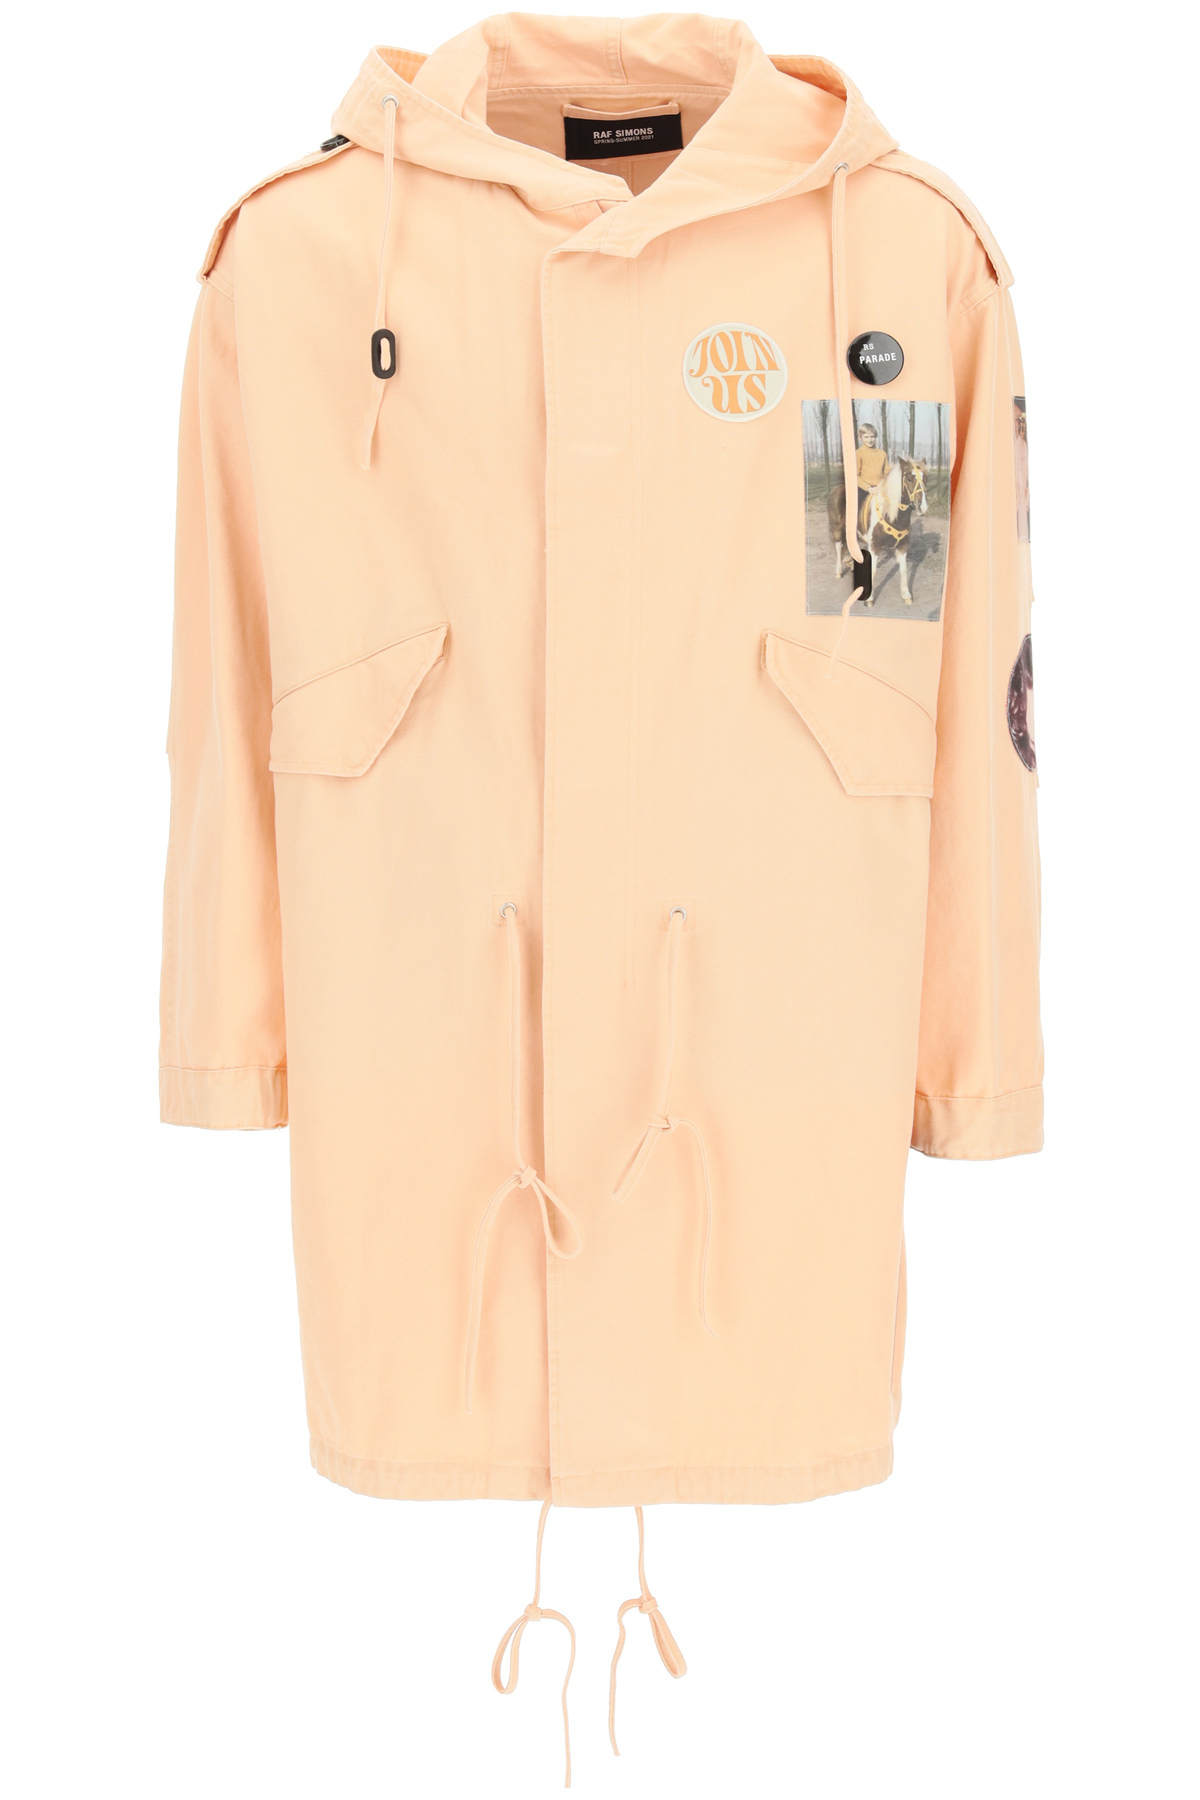 Raf simons parka in cotone con patch